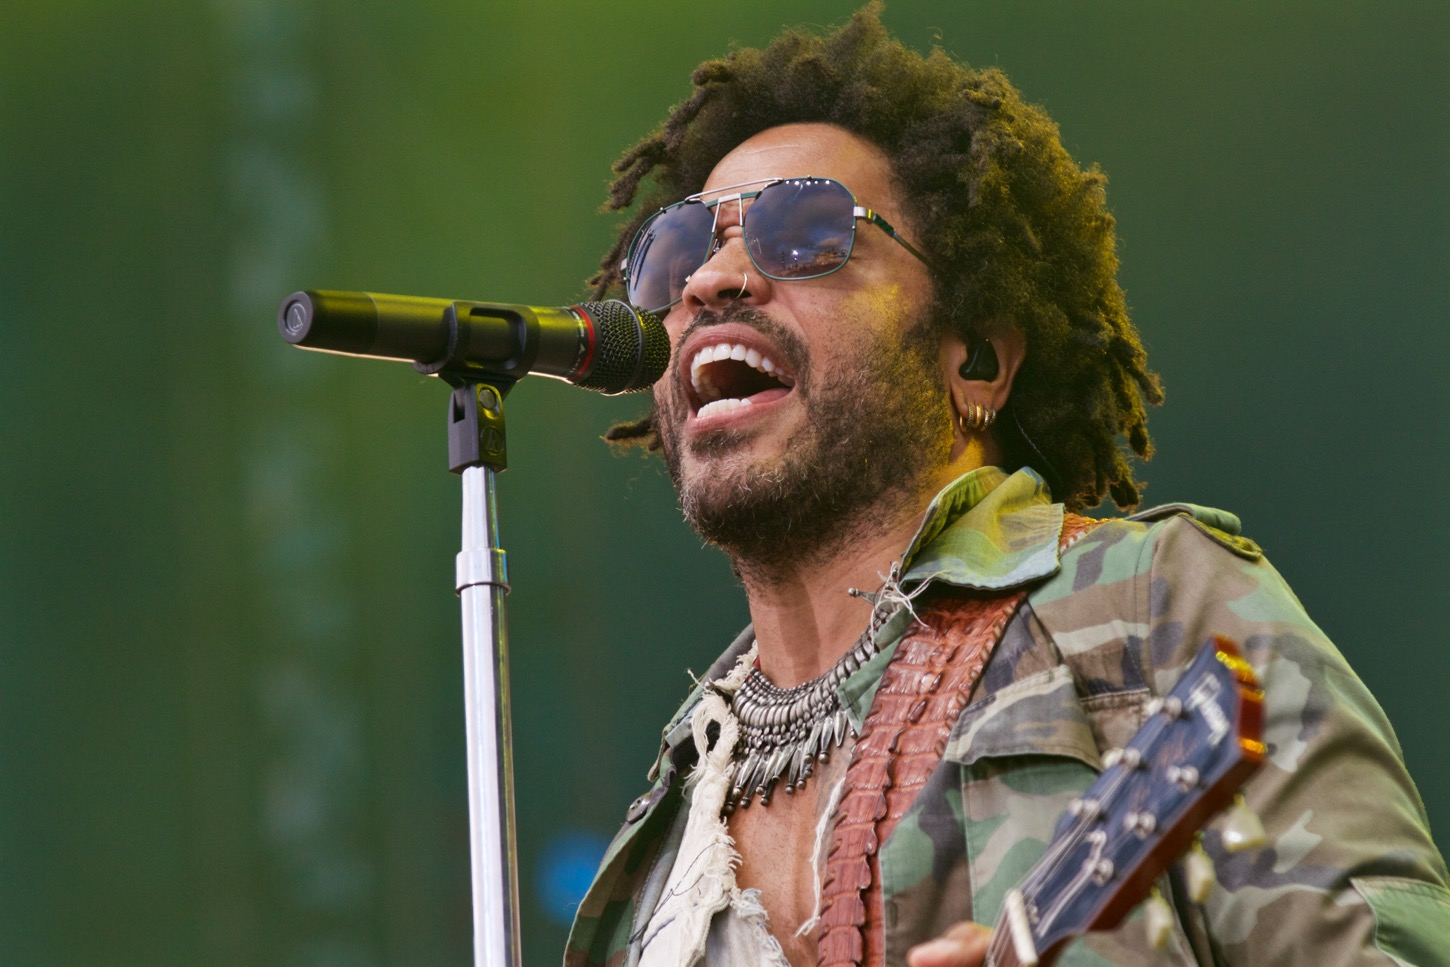 Lenny Kravitz at KAABOO 2016, September 17th. Photo by Derrick K. Lee, Esq. (@Methodman13) for www.BlurredCulture.com.